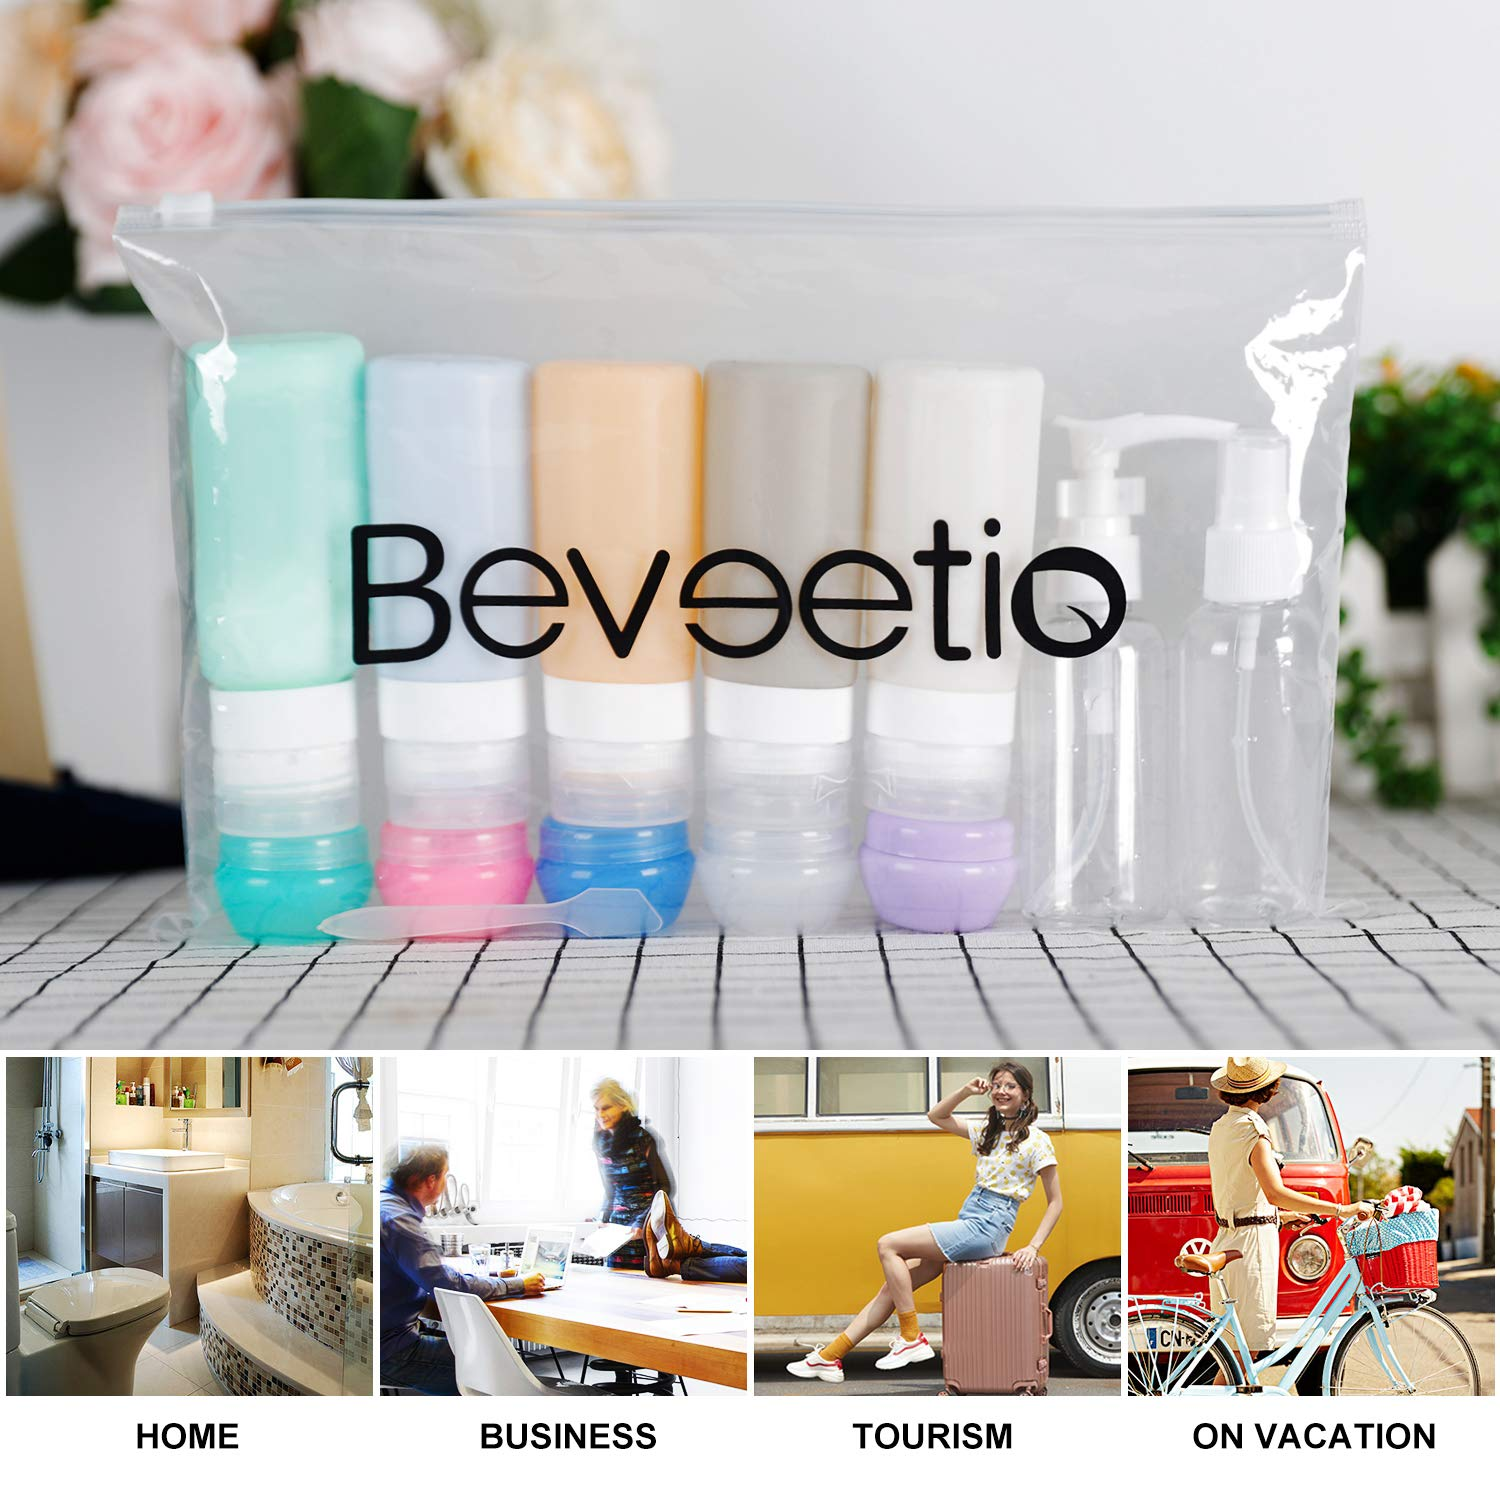 14 Pack Travel Bottles TSA Approved, Beveetio 2.9oz Leak Proof Travel Tubes, BPA Free Refillable Silicone Squeeze Bottles Toiletries Containers for Cosmetic Shampoo Conditioner Lotion Soap